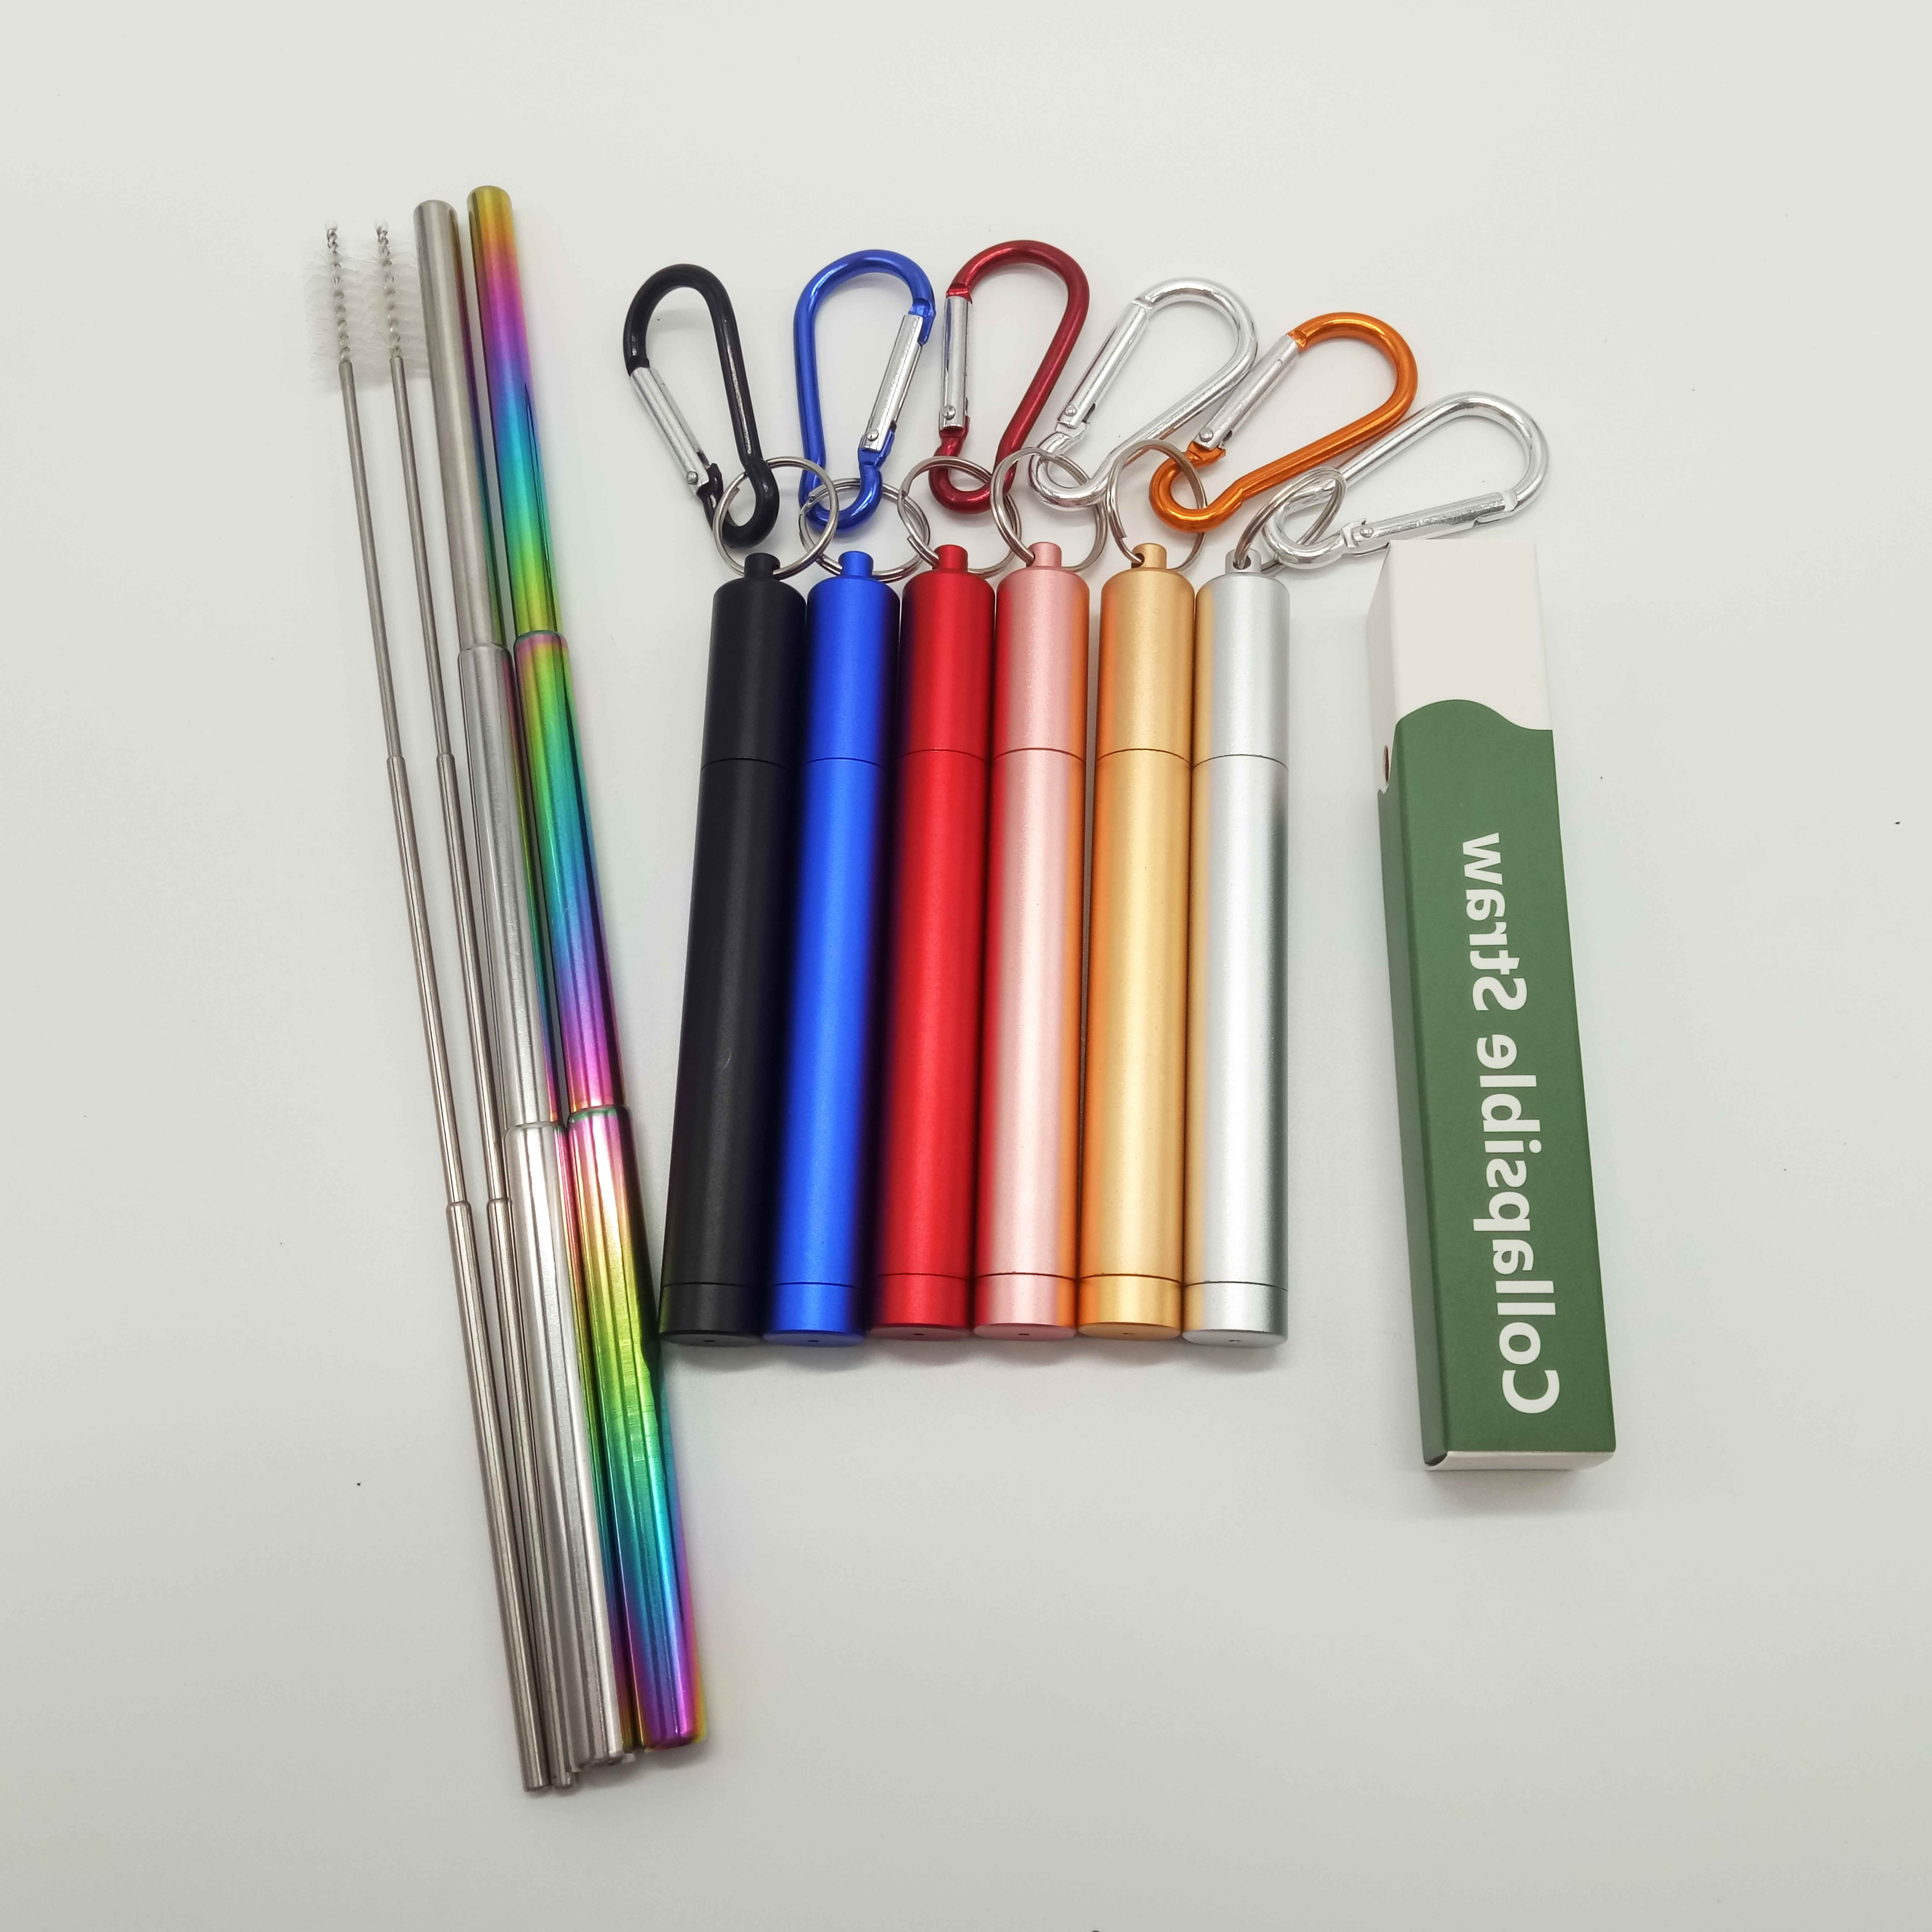 Professional Manufacturer Hot Sale Collapsible Telescopic Metal Drinking Straw